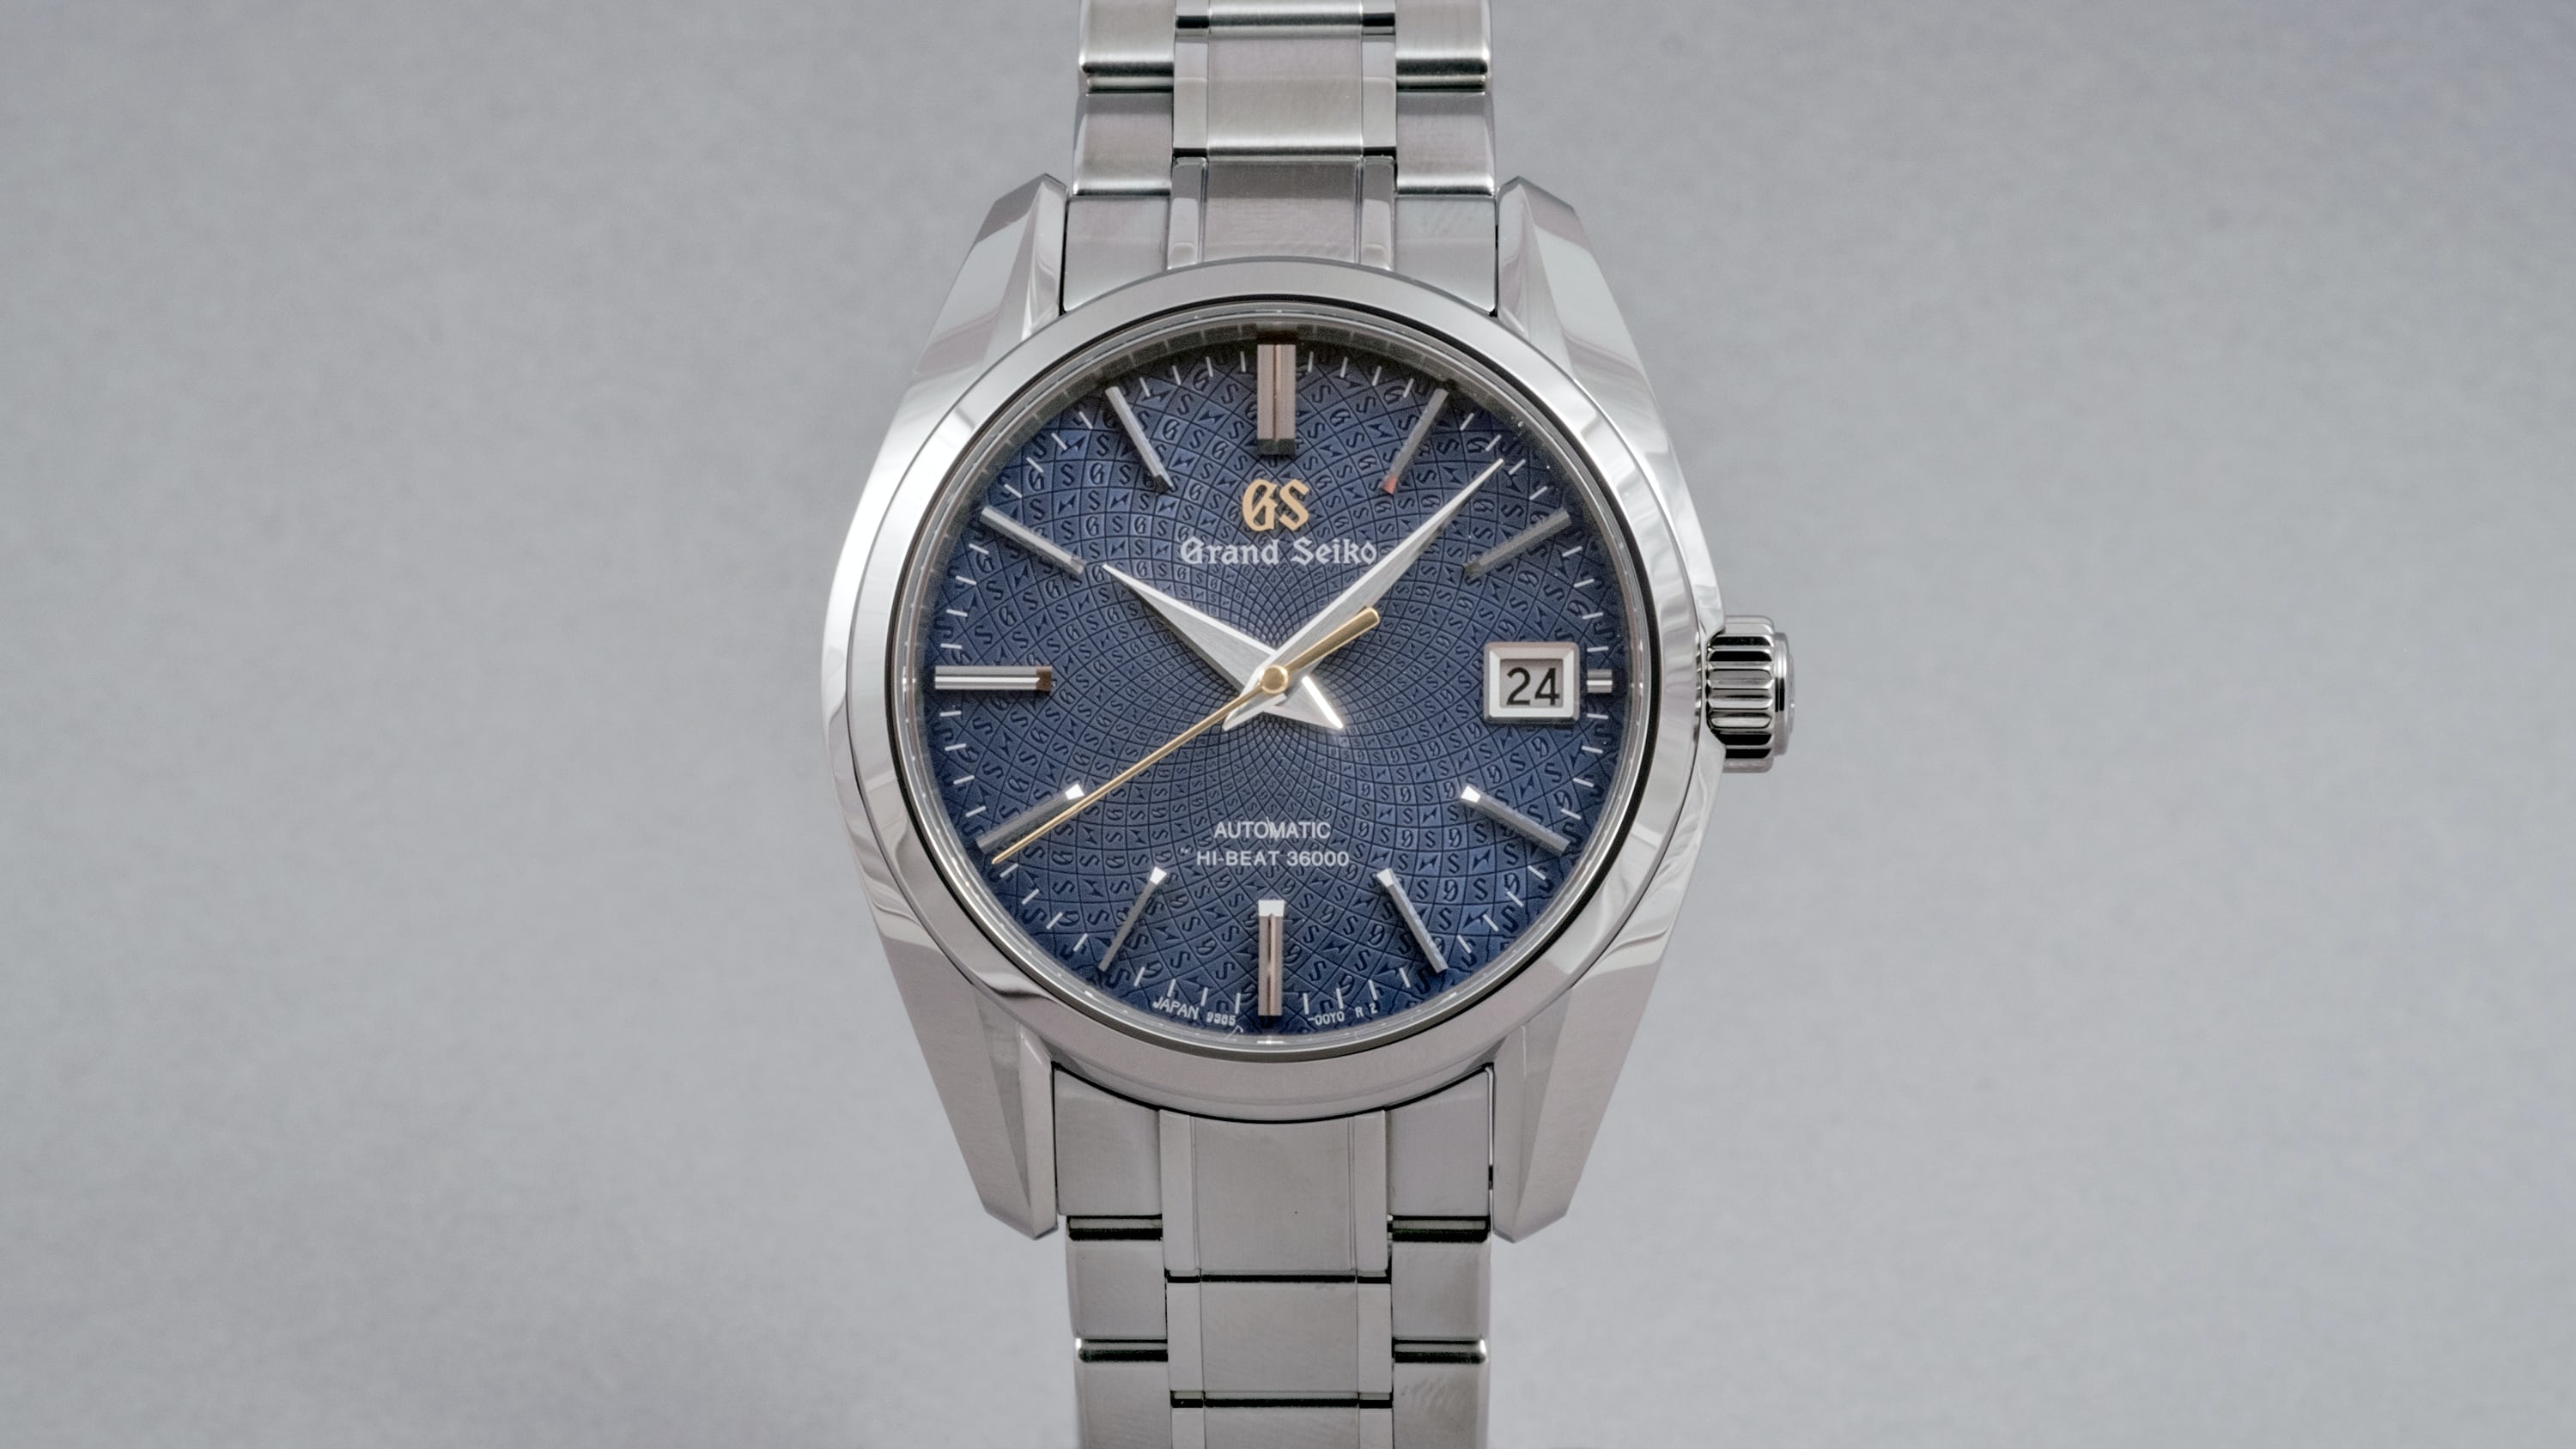 3685d6639d6 Introducing  The Grand Seiko Hi-Beat 36000 SBGH267 For The 20th Anniversary  Of Caliber 9S (Live Pics   Pricing) - HODINKEE